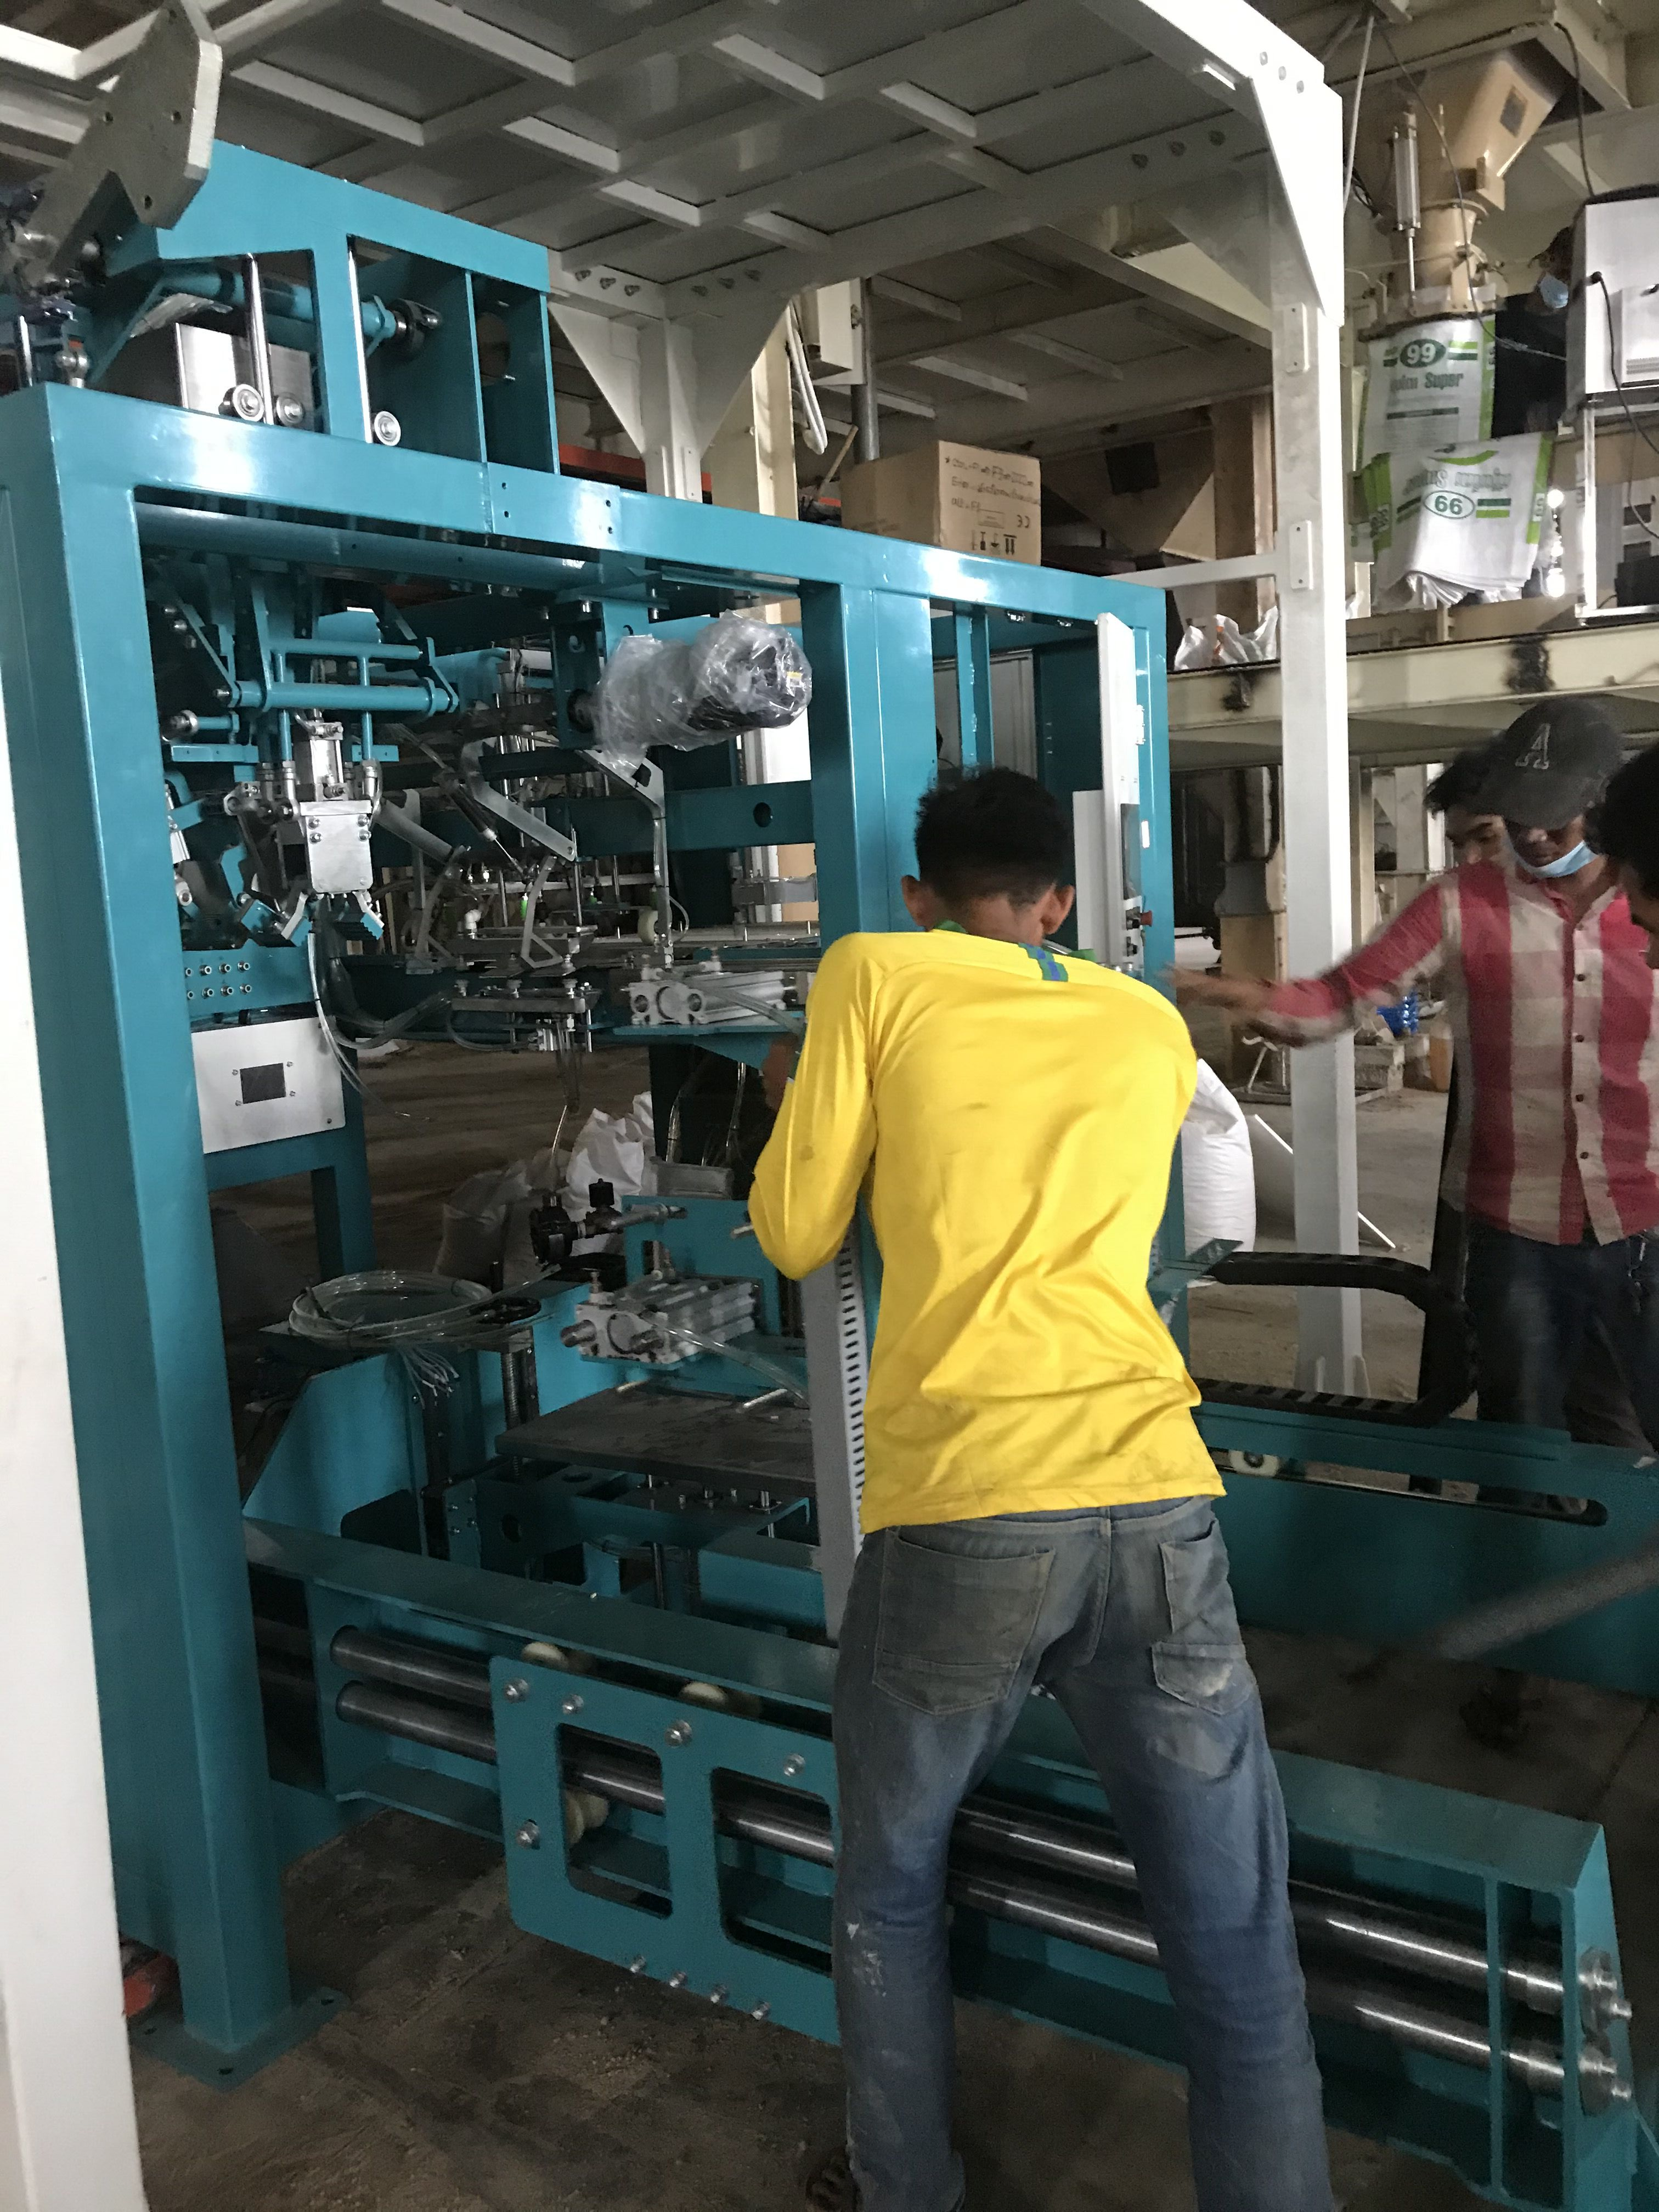 25-50KG bag Automatic packing Machine Automatic bagging machine Auto Packer for NPK and Urea fertilizers full automatic packaging line full automatic fertilizers bagging palletizing and wrapping syste